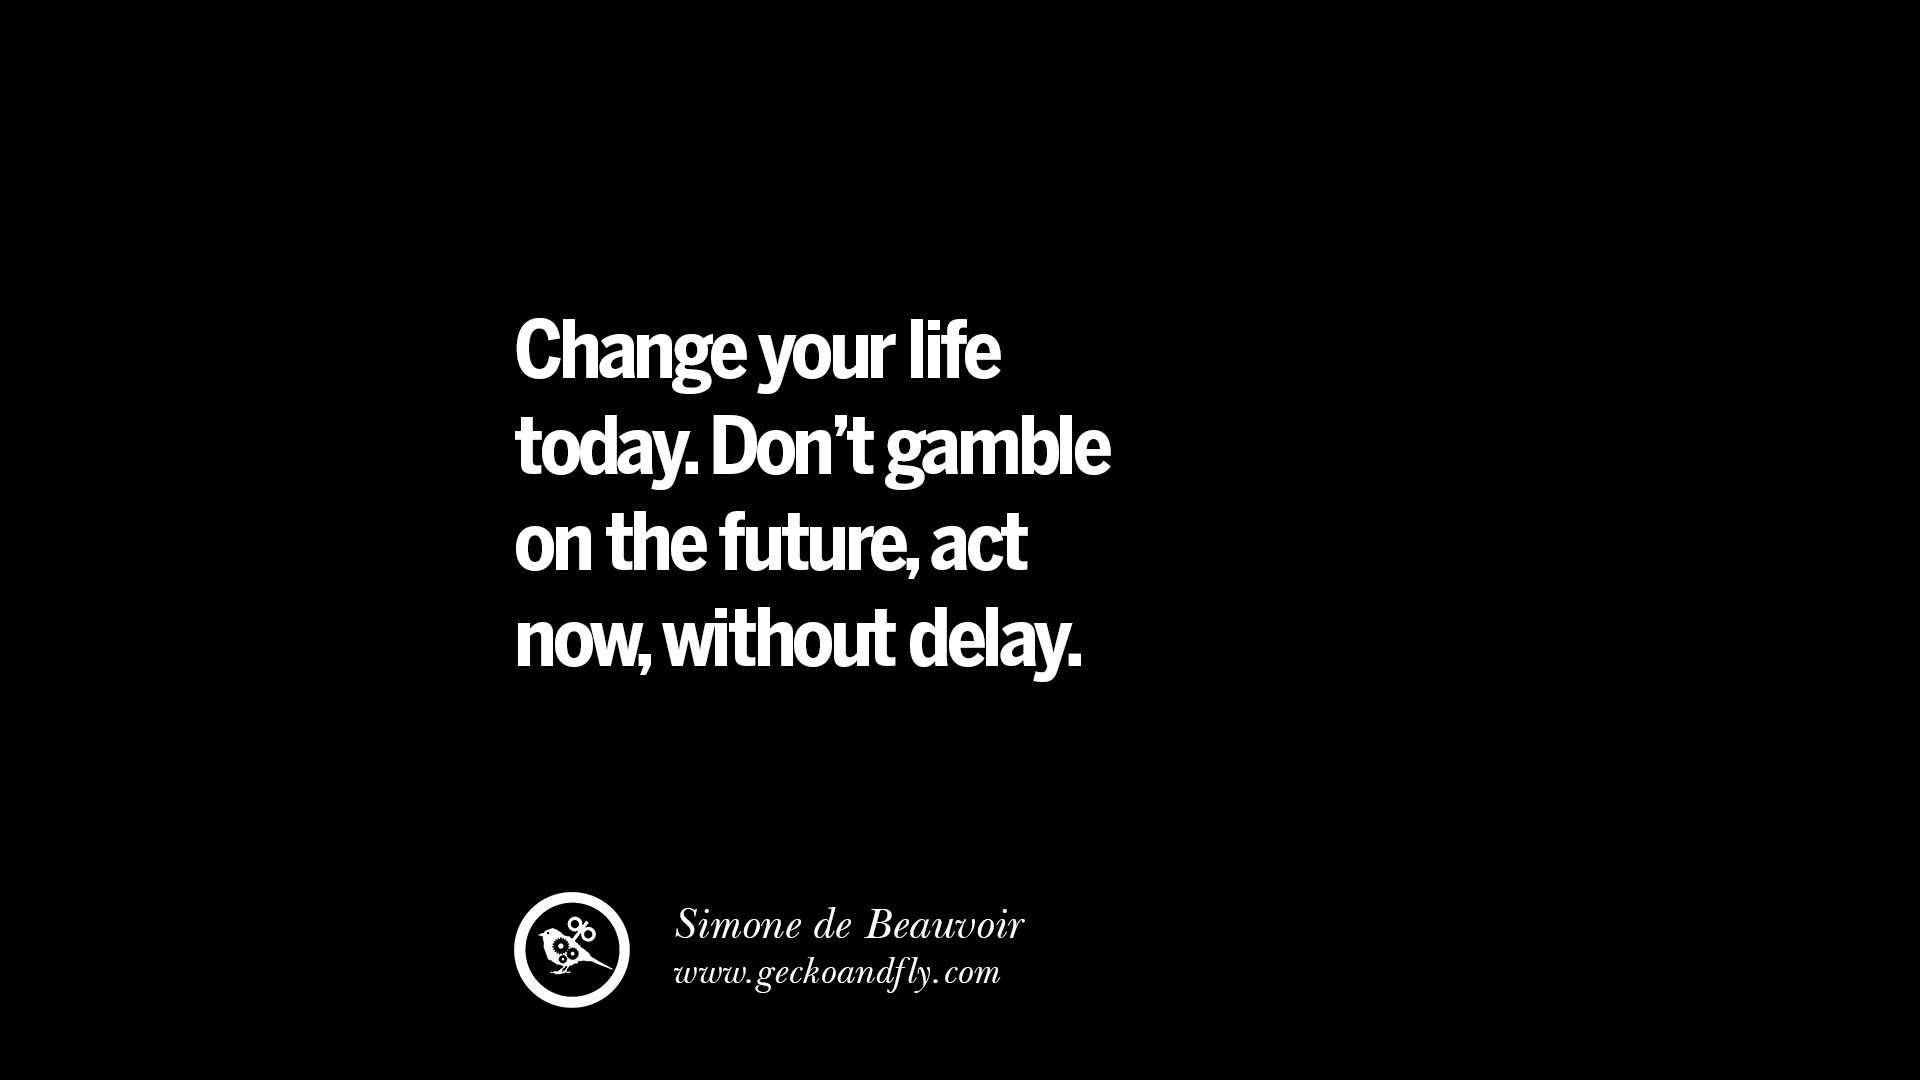 Life Quotes About Change Endearing 45 Quotes On Change And Changing Our Attitudes  Geckoandfly 2018